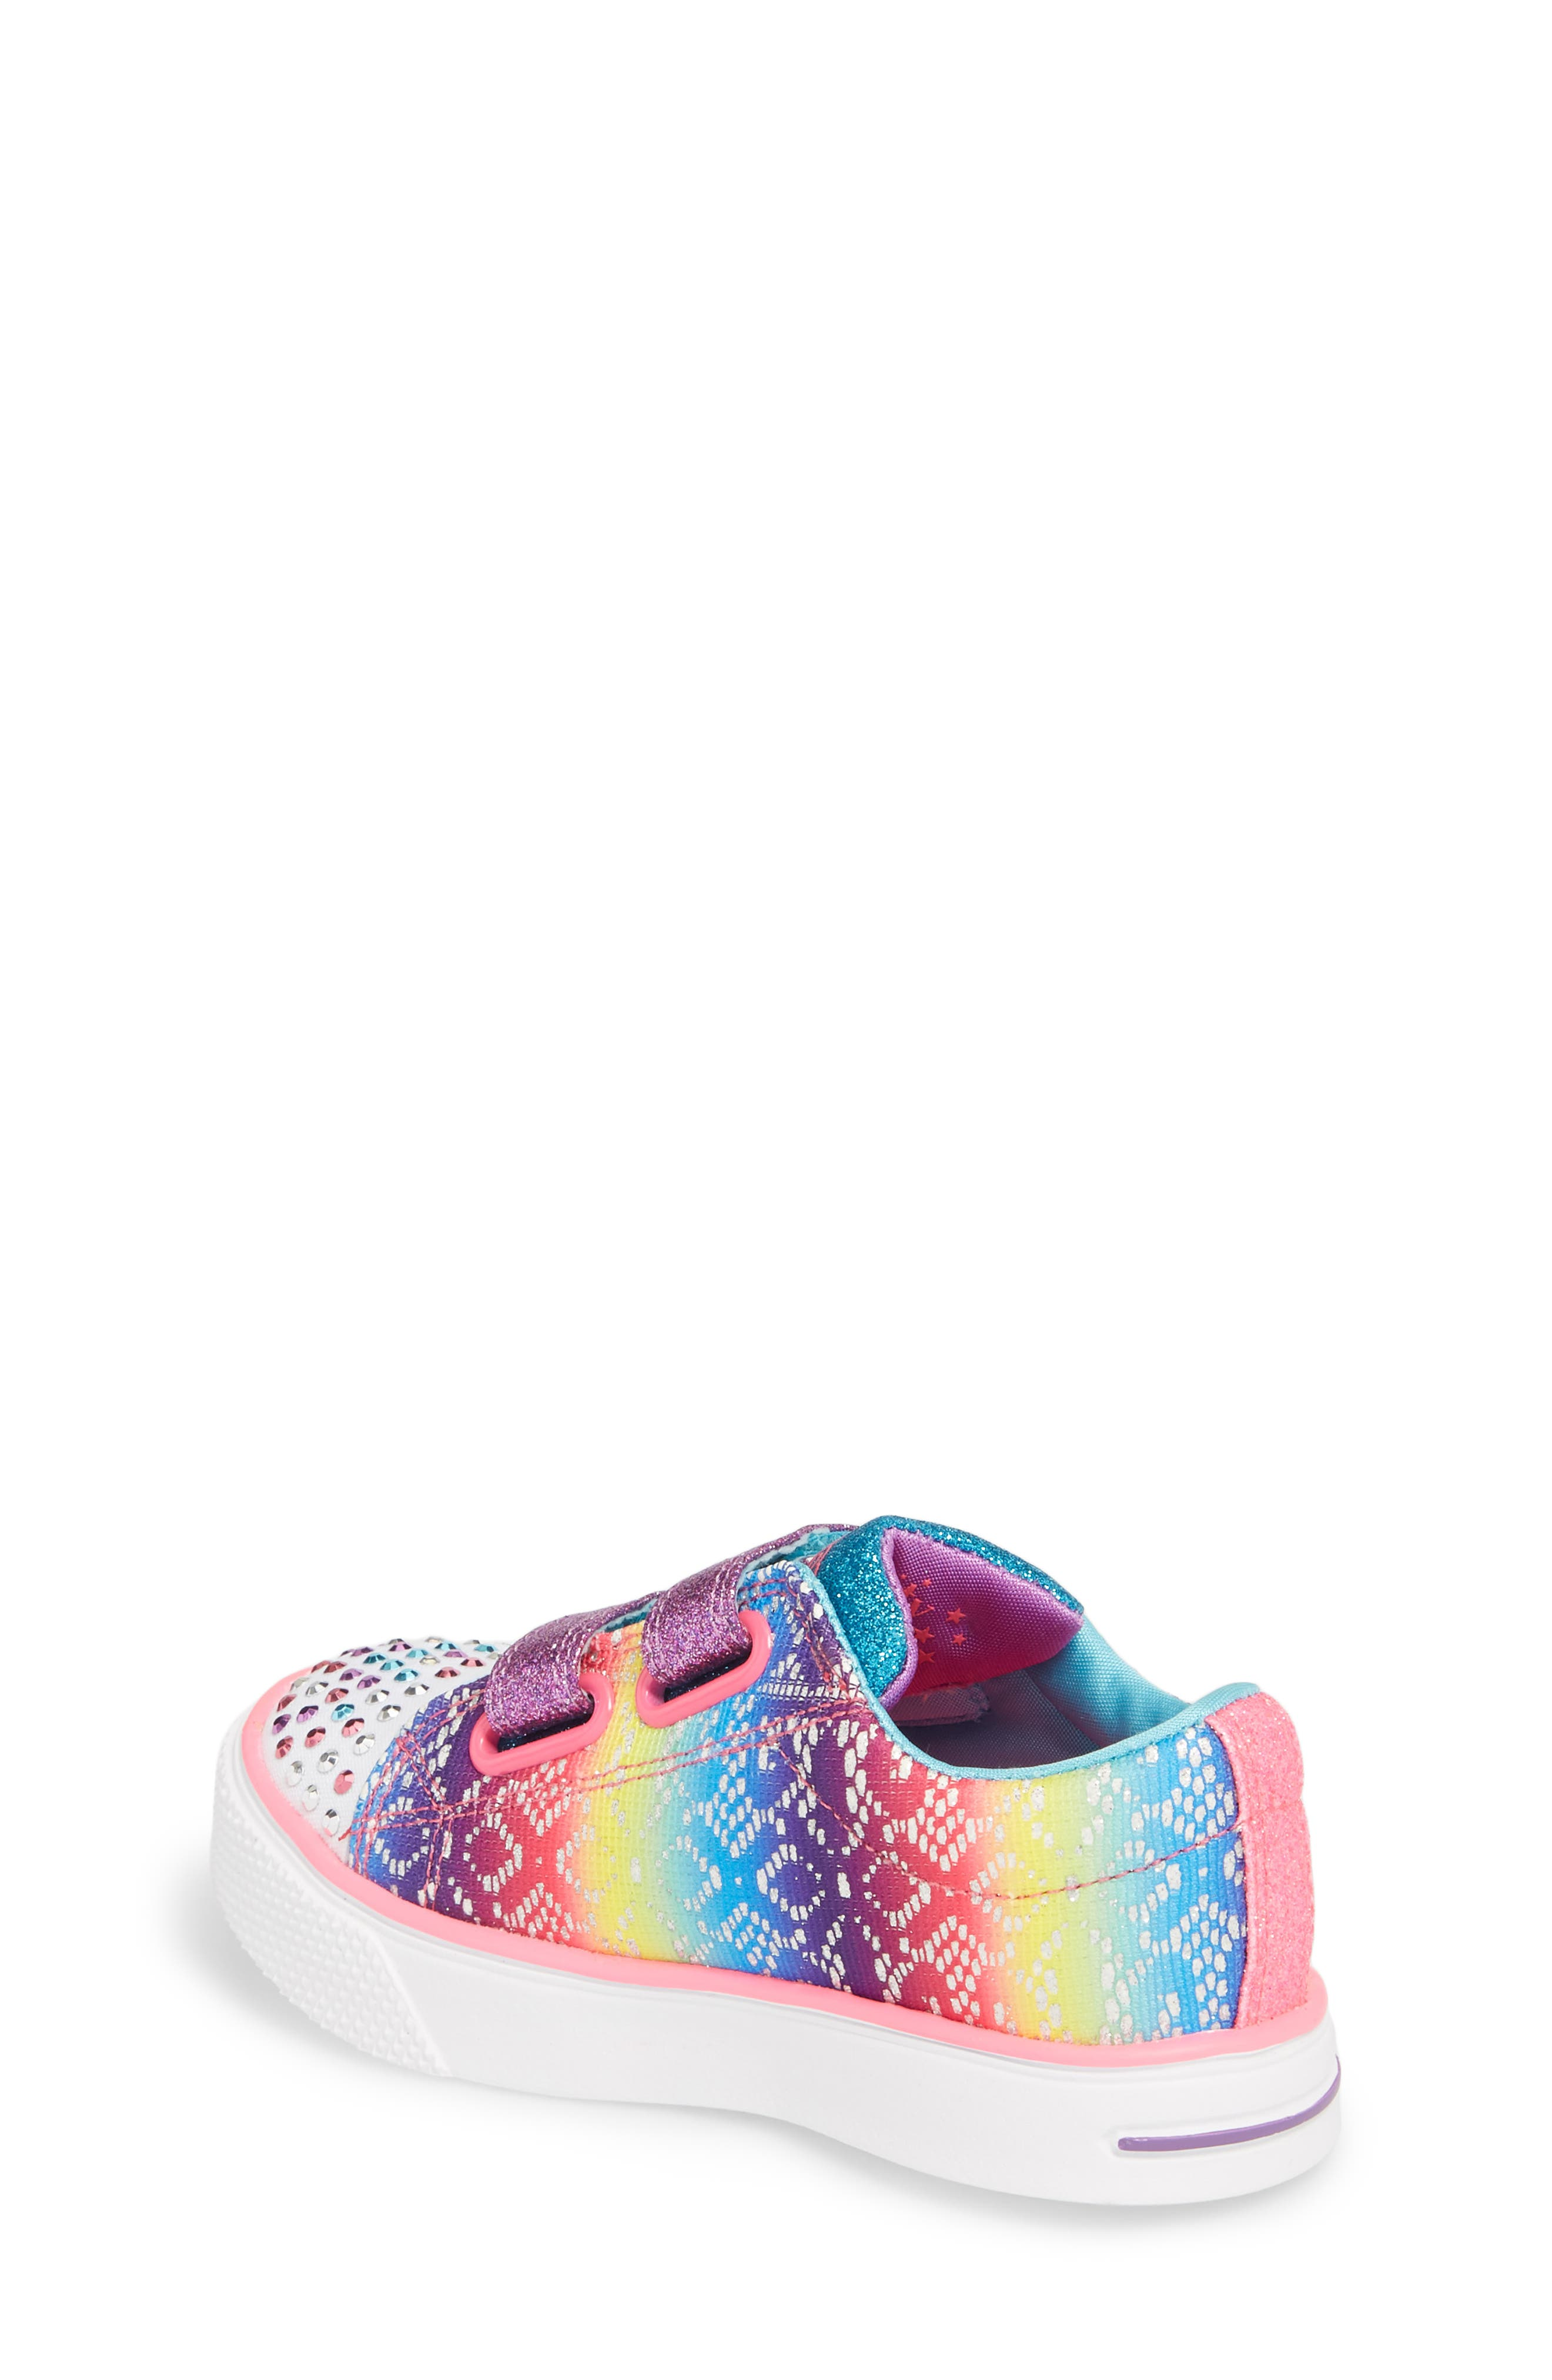 Twinkle Toes Breeze 2.0 Light-Up Sneaker,                             Alternate thumbnail 2, color,                             650